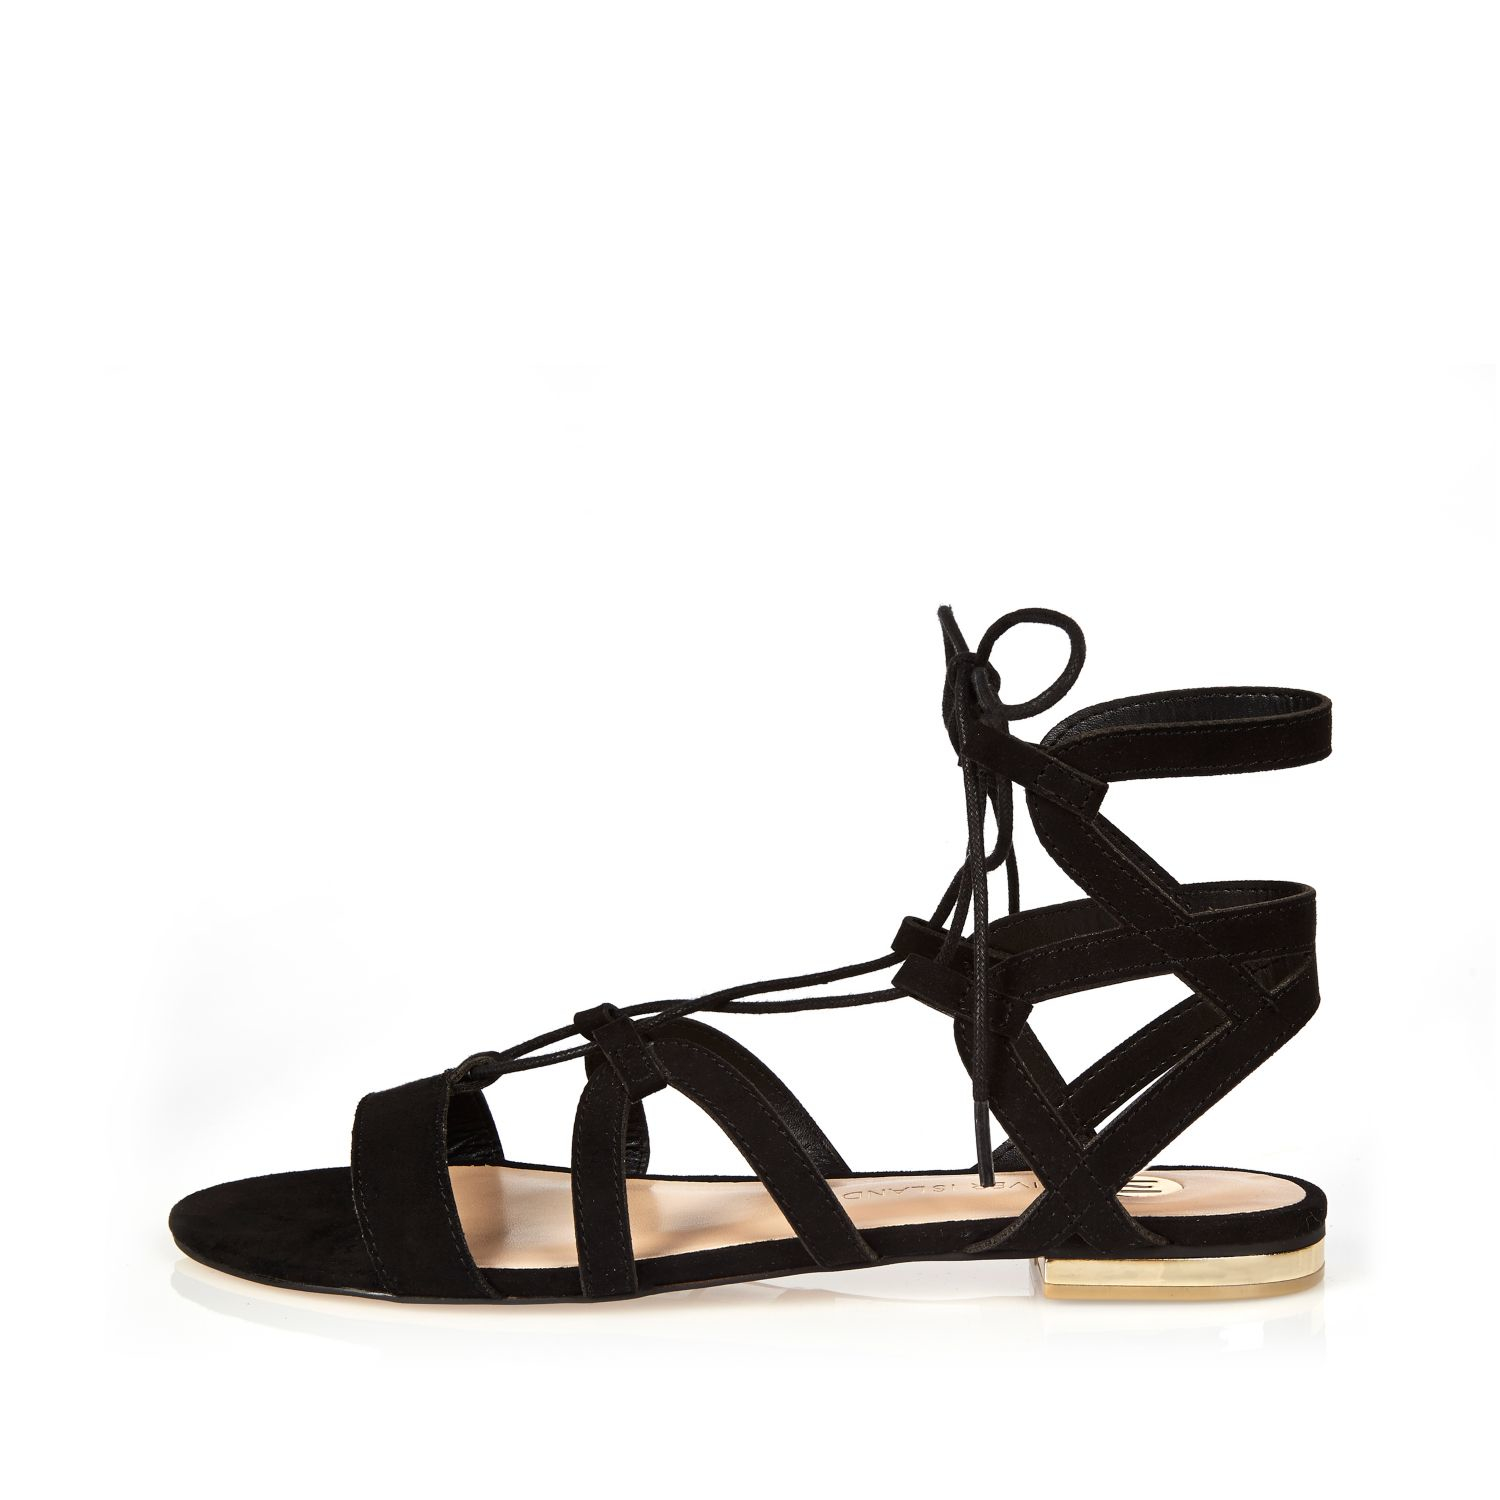 buy cheap wholesale price latest River Island sandals with scallop edge in black pre order spQZ40